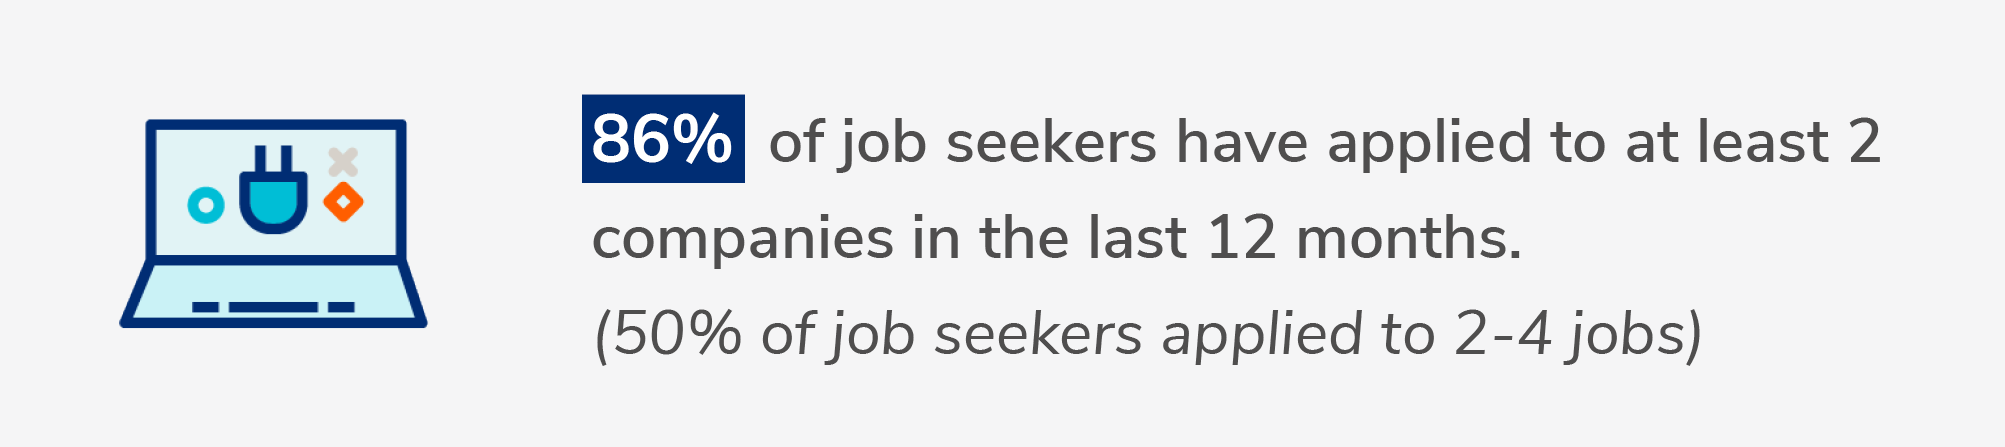 how many jobs do job seekers apply to